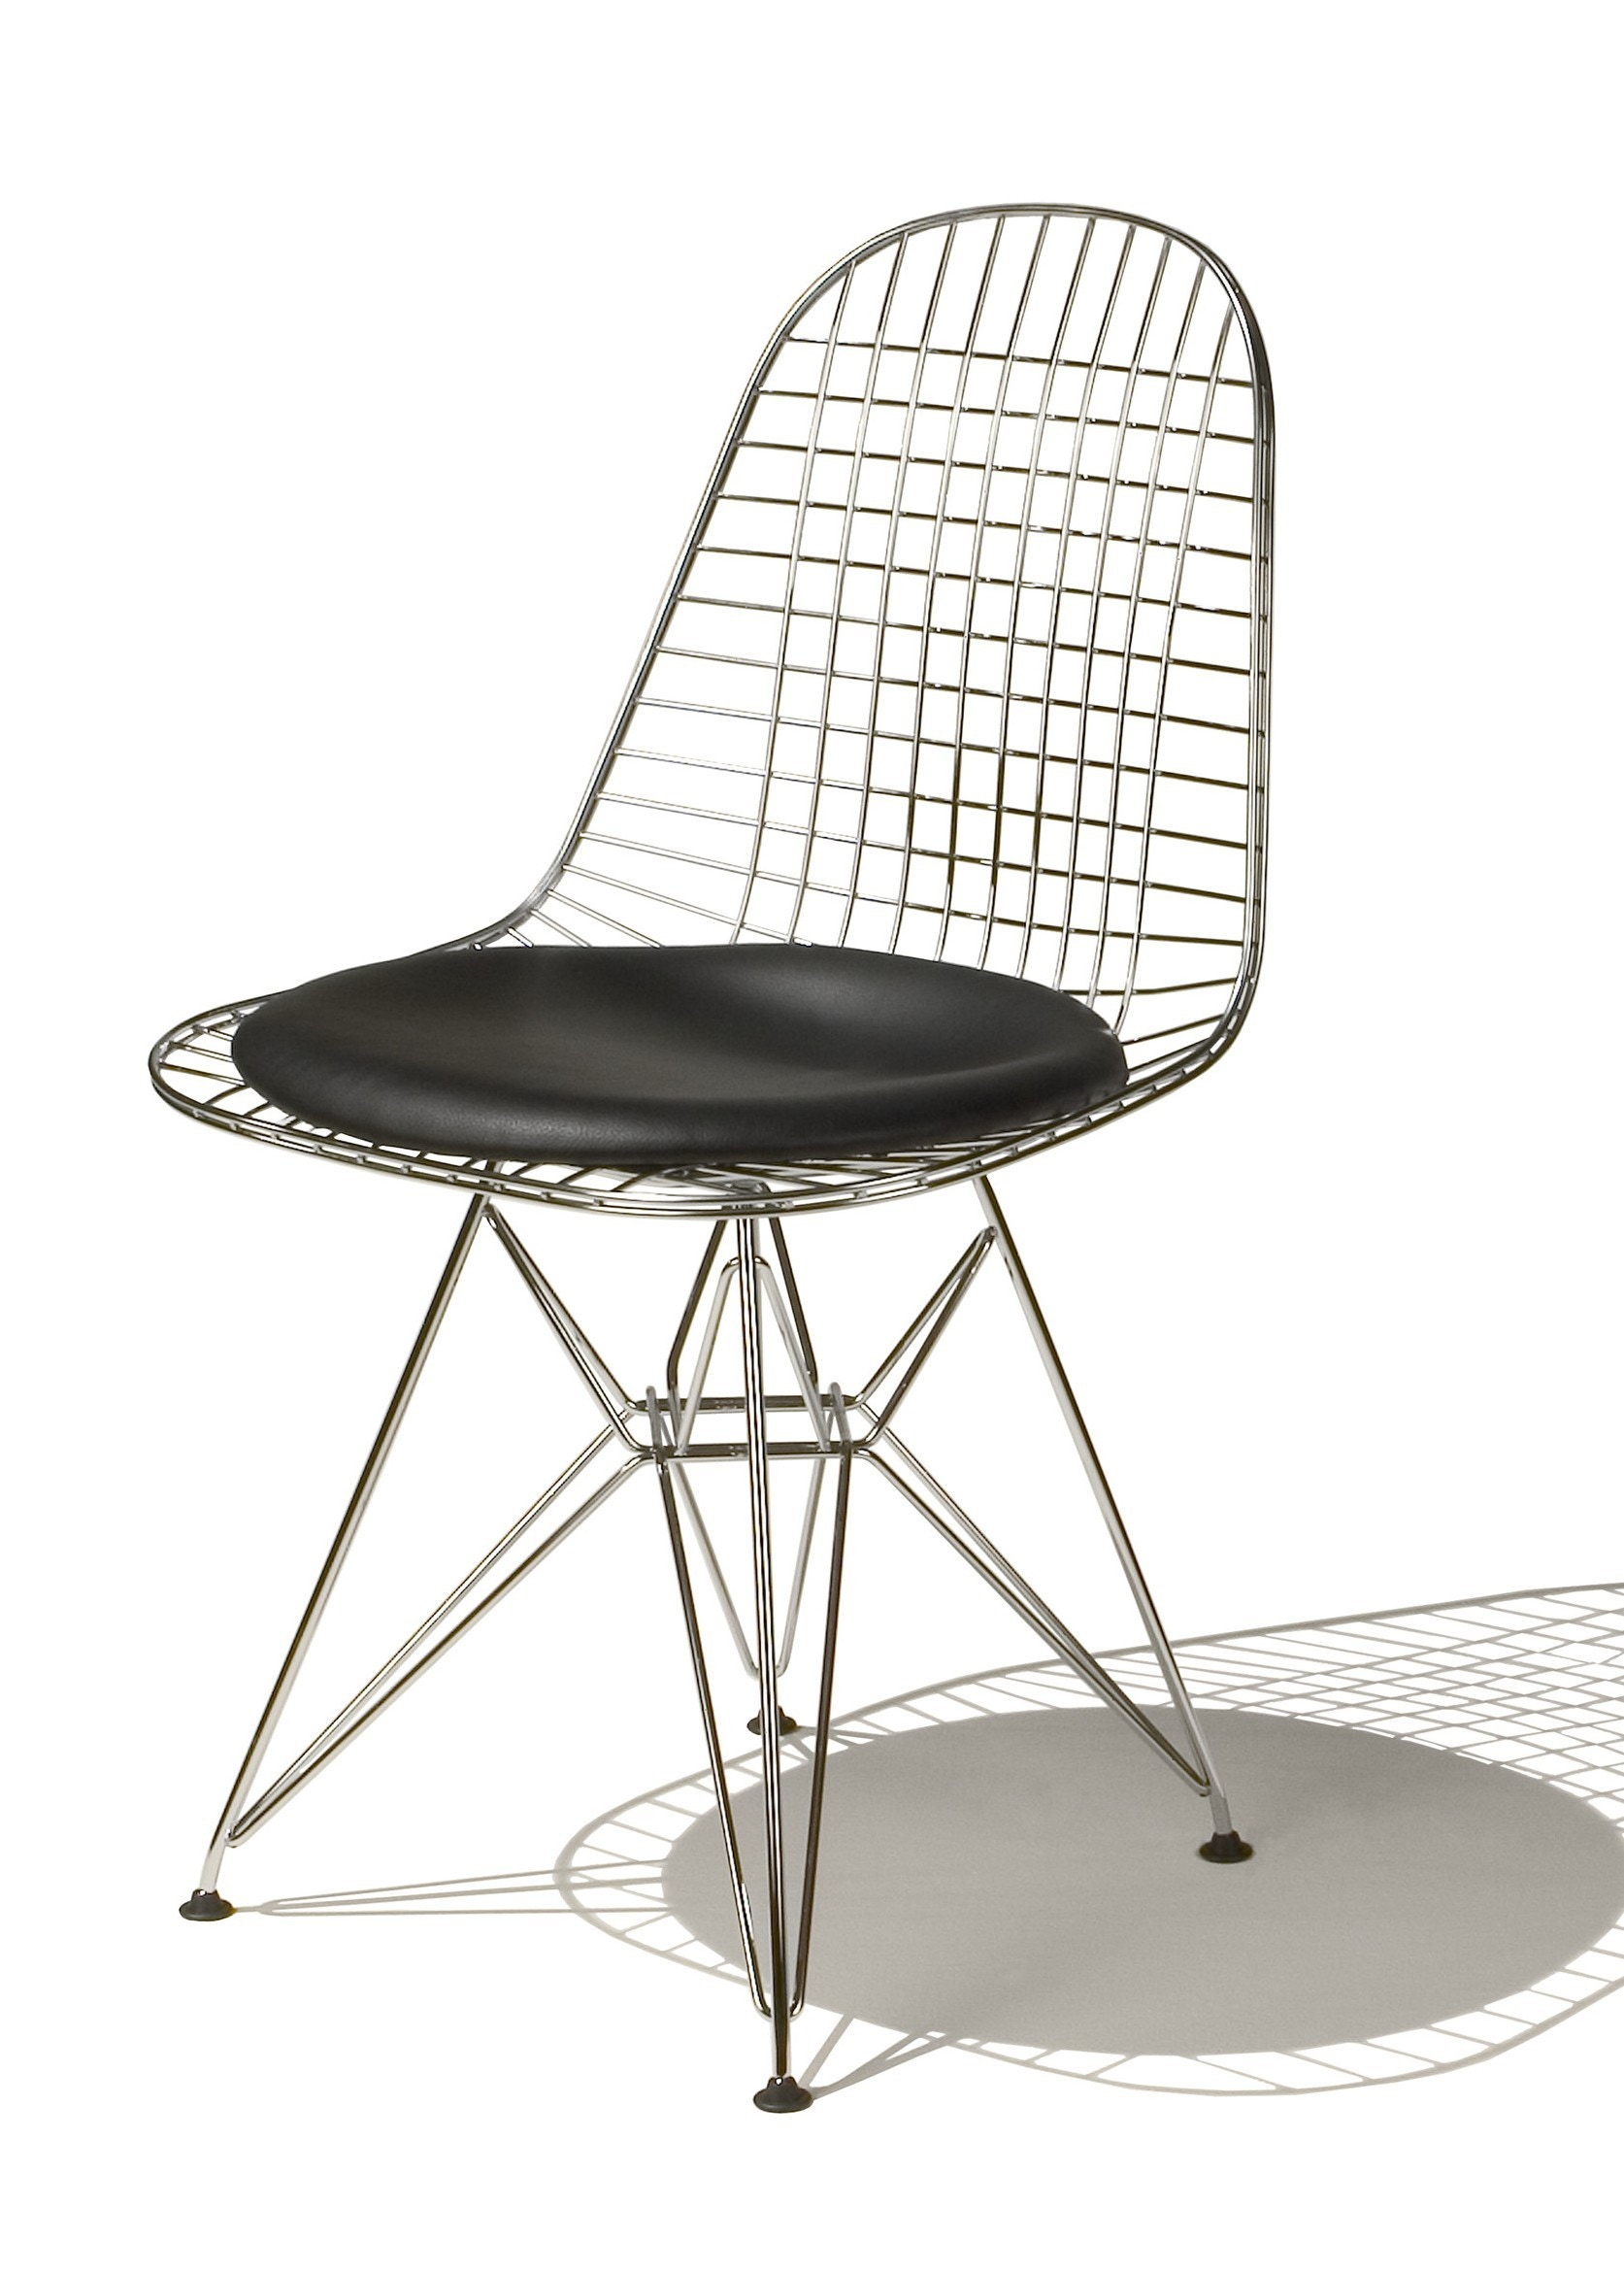 cushion leather replica b products of wire harry side ebarza copy chair bertoia